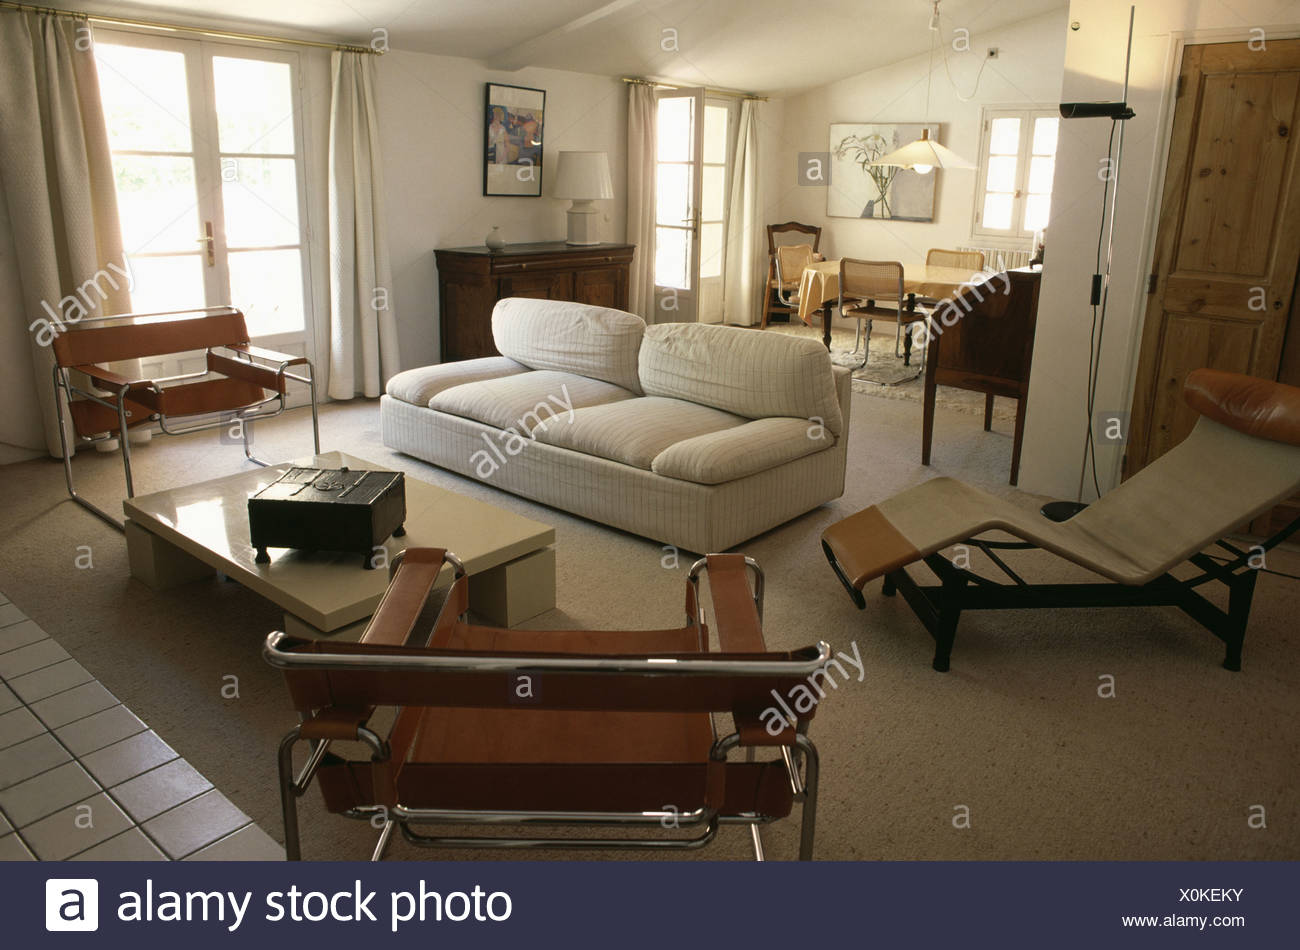 Moderne Esszimmer Sessel Marcel Breuer Chair Stockfotos Marcel Breuer Chair Bilder Alamy